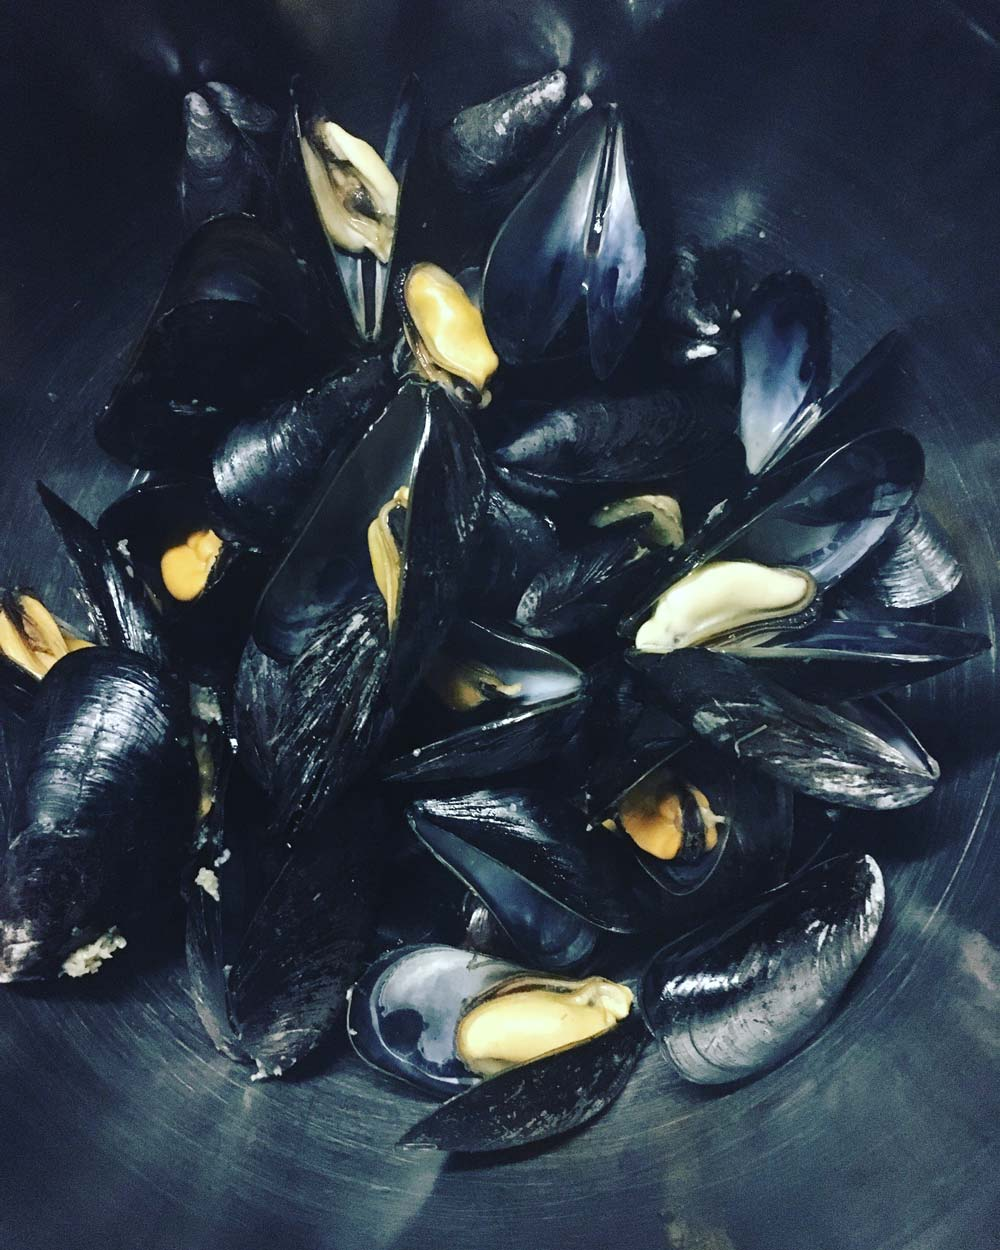 Delicious-Living-Nutrition-Cauliflower-Grits-Recipe_Mussels.jpg